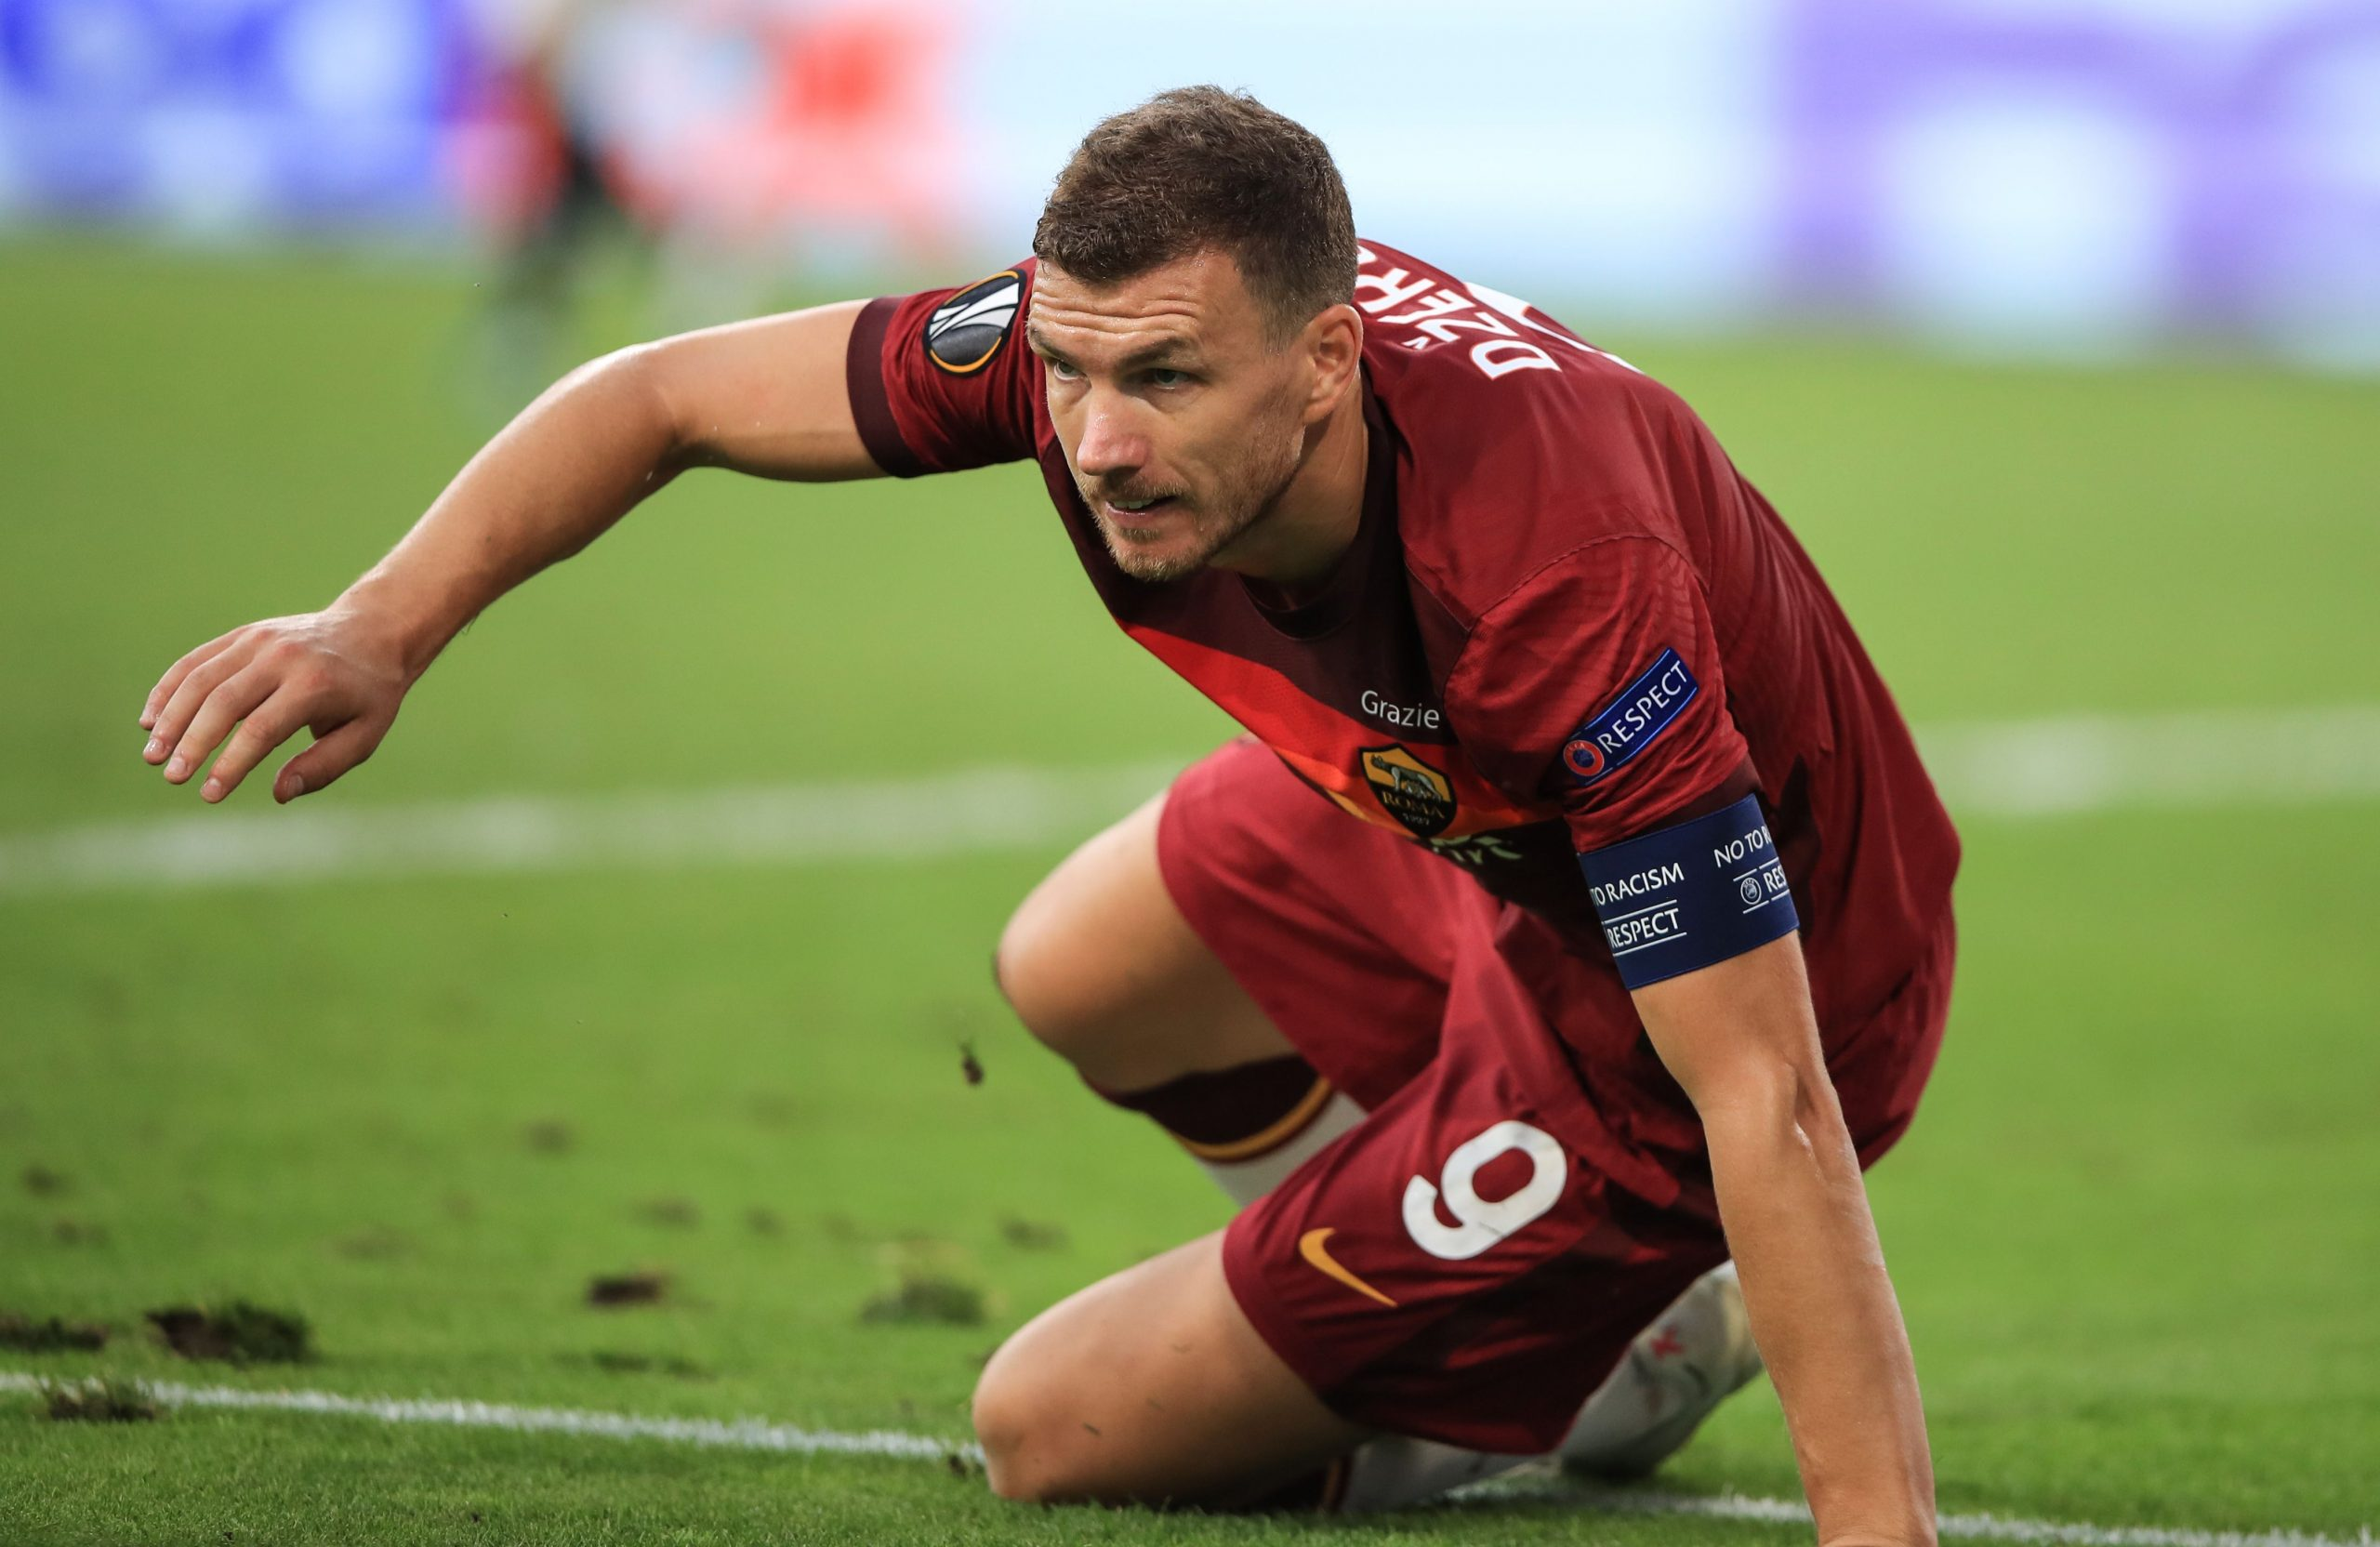 Roma ace linked with a free transfer to Juventus